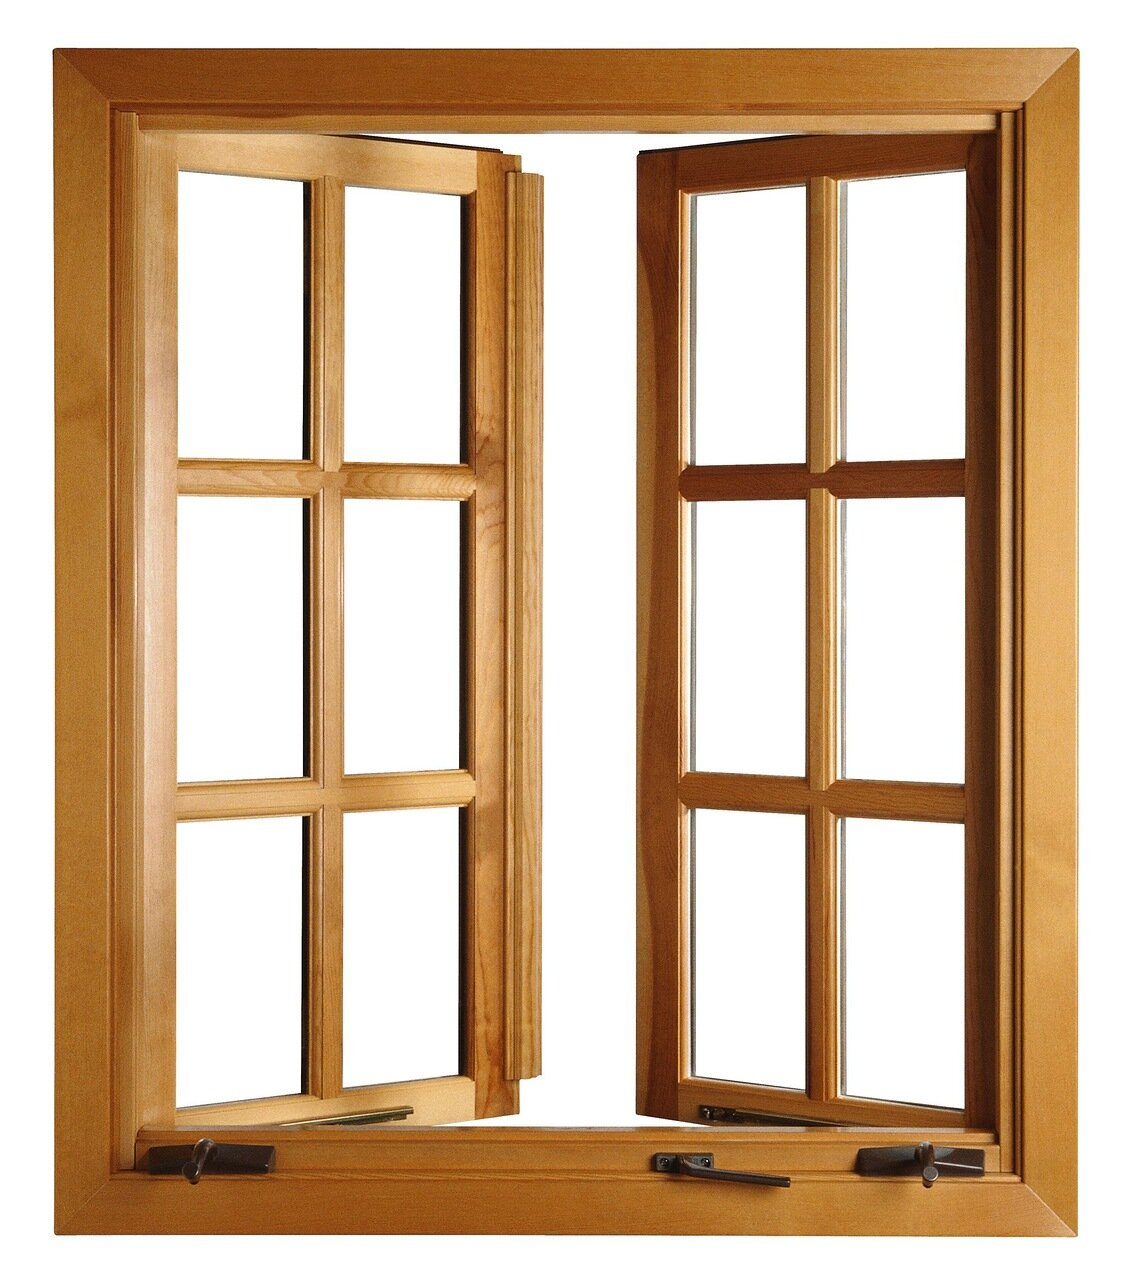 Doors wood doors 0152 01 preview jpg - Windows Door Polyvore